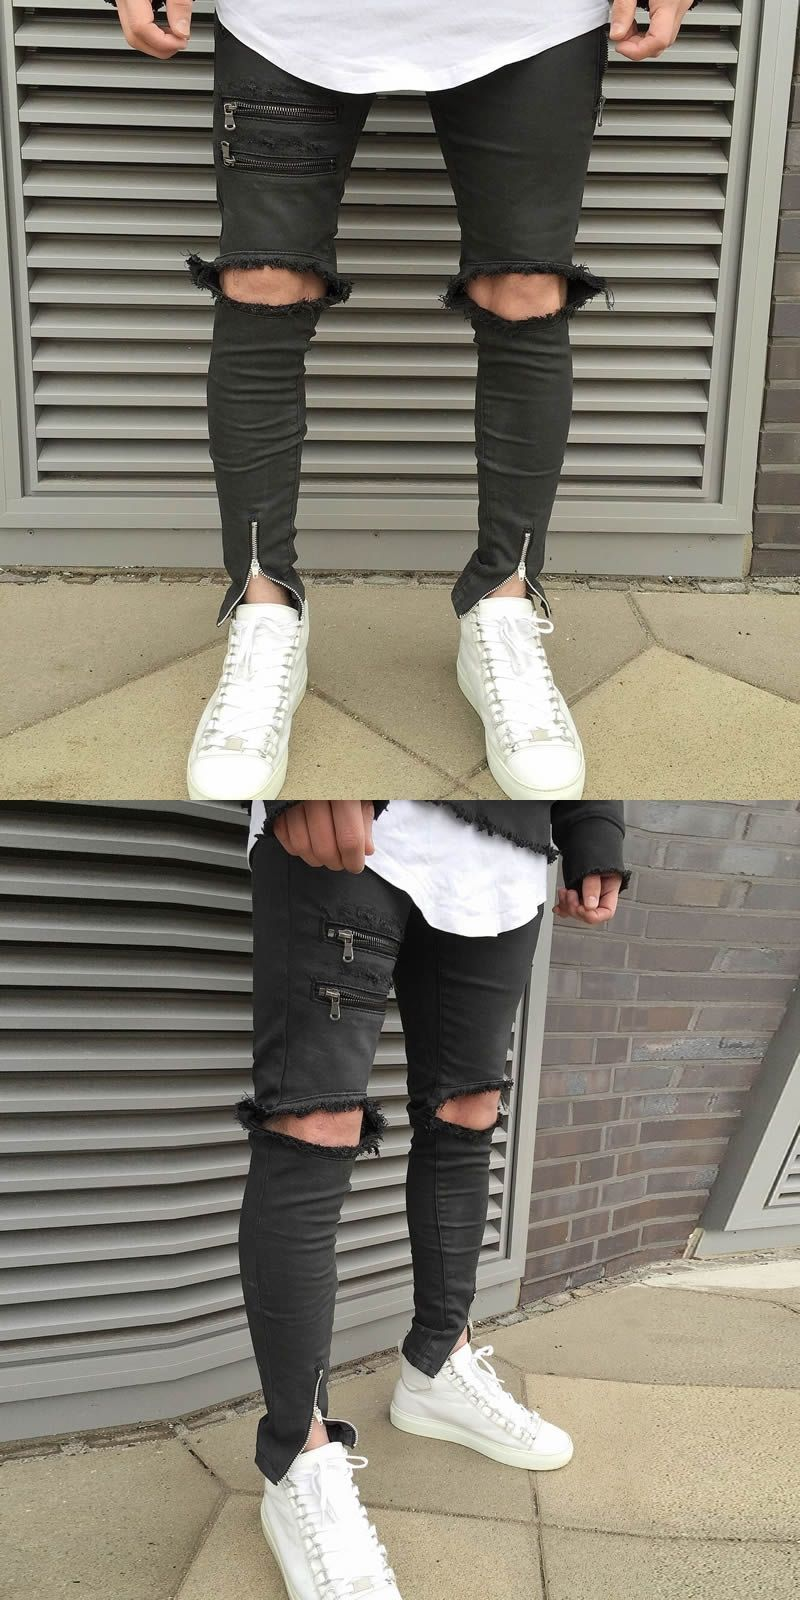 404b796666b NEW Retro Men Hip Hop Zipper Ripped Biker Jeans Zipper Hole Rap Skinny  Motorcycle Jeans Men